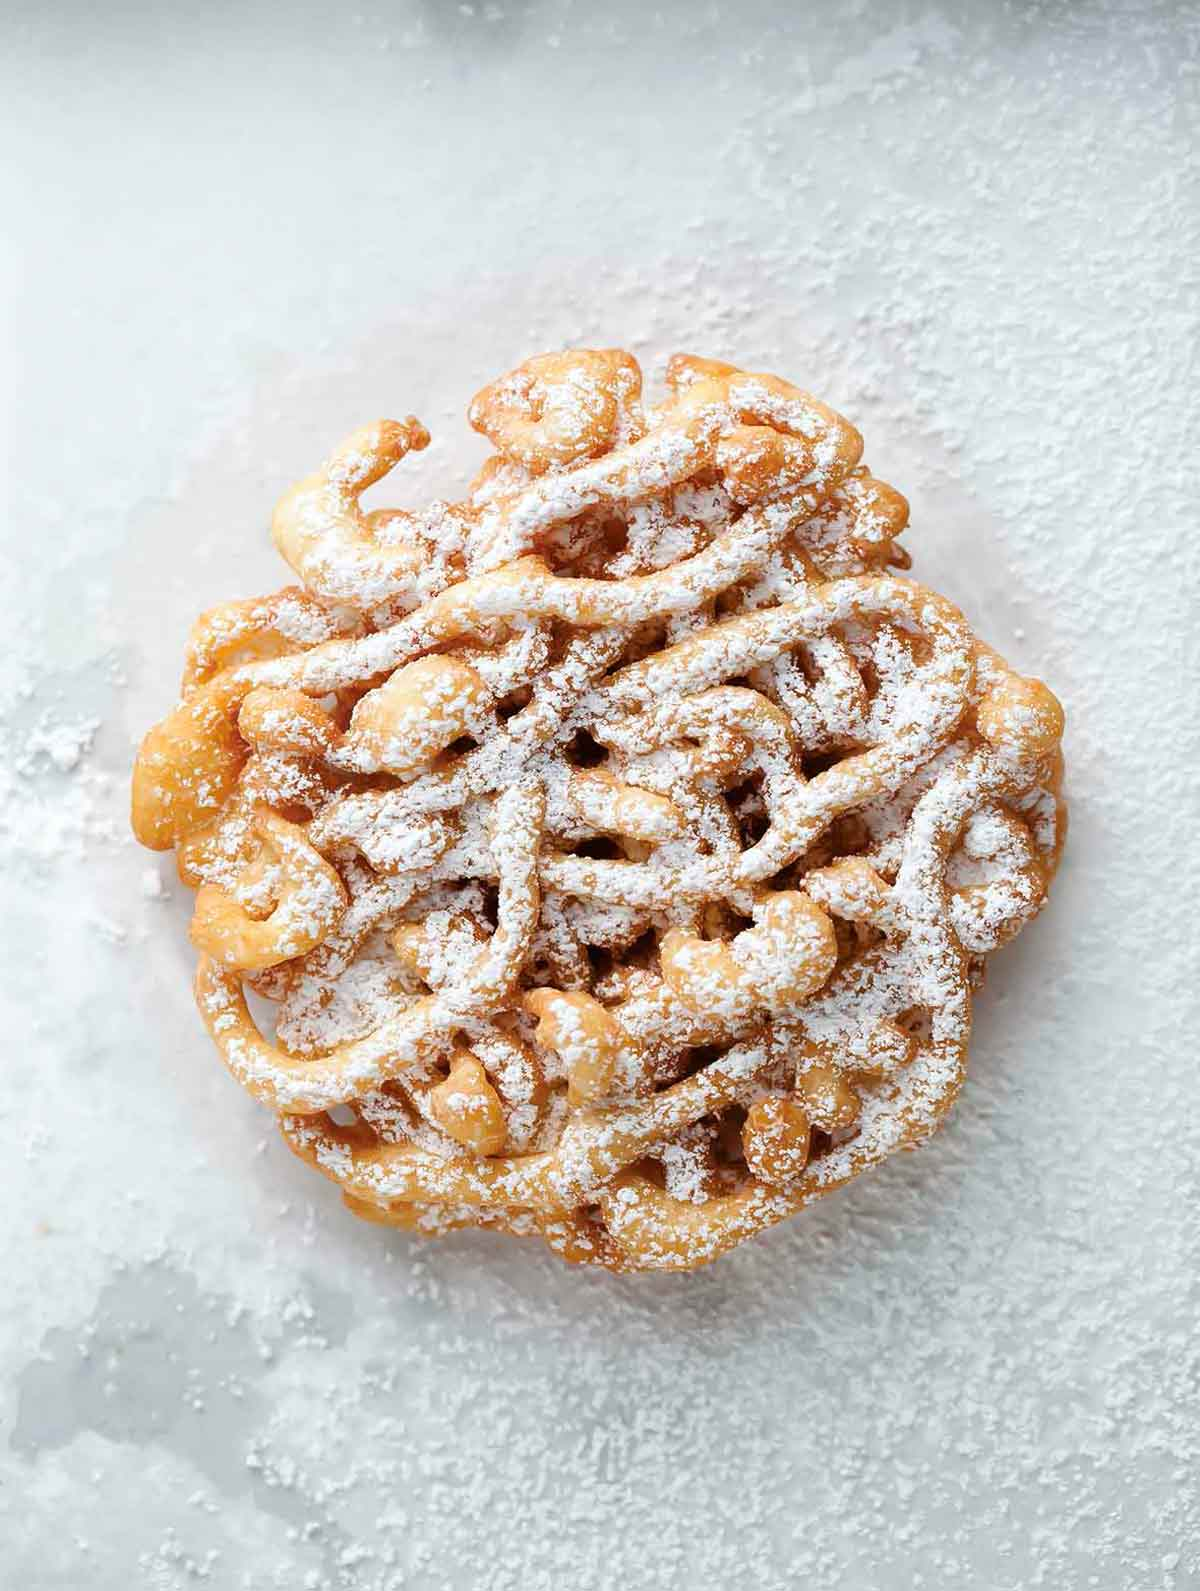 A mini funnel cake dusted with confectioners' sugar.